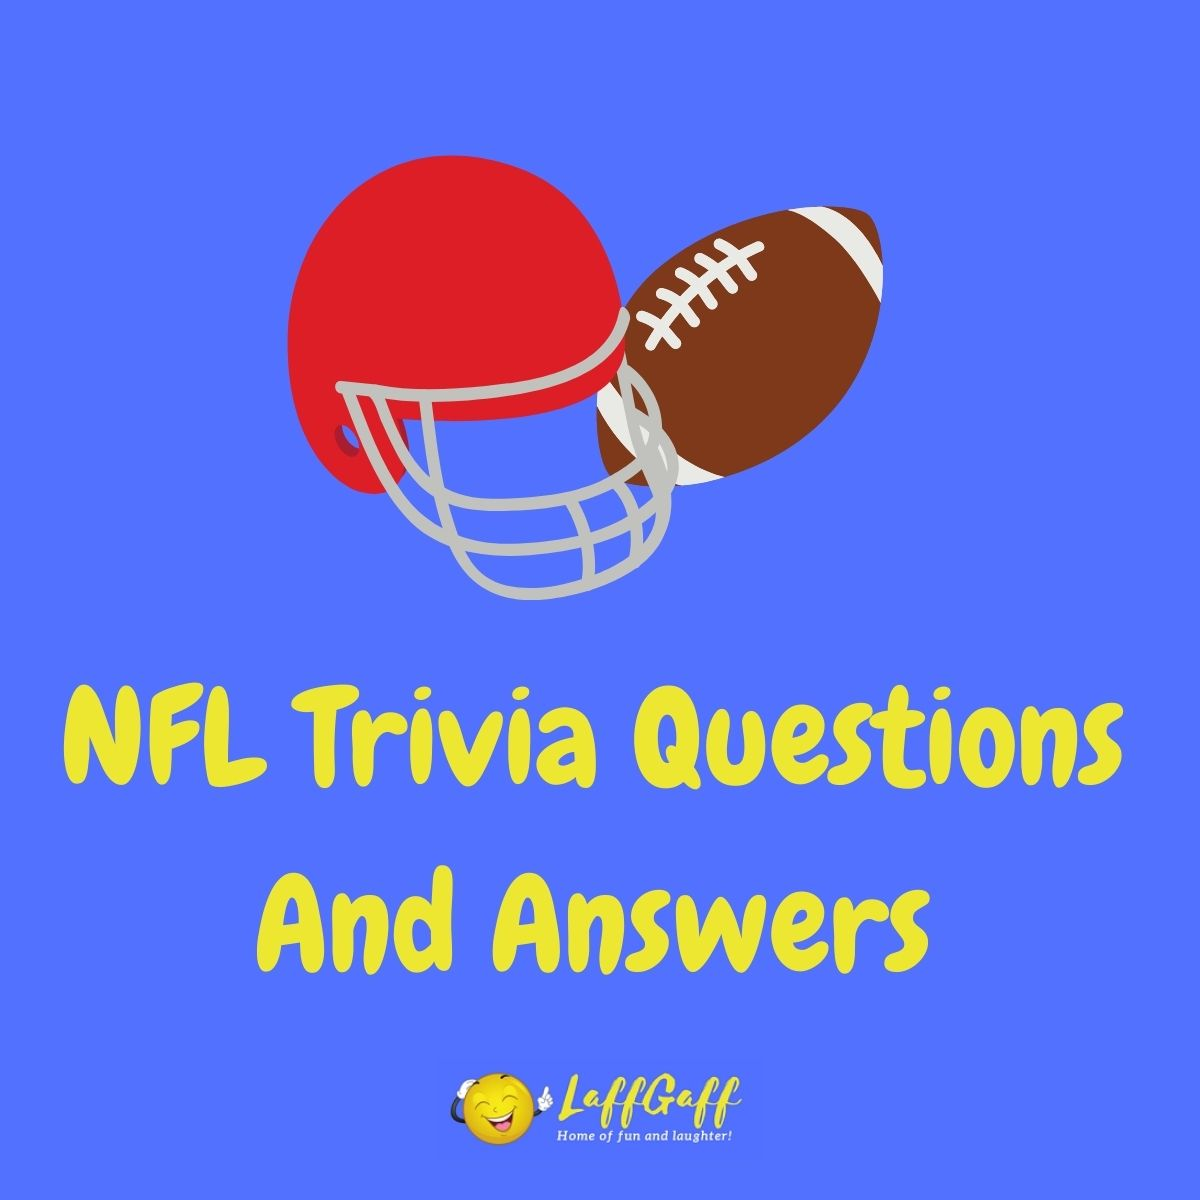 Featured image for a page of NFL trivia questions and answers.